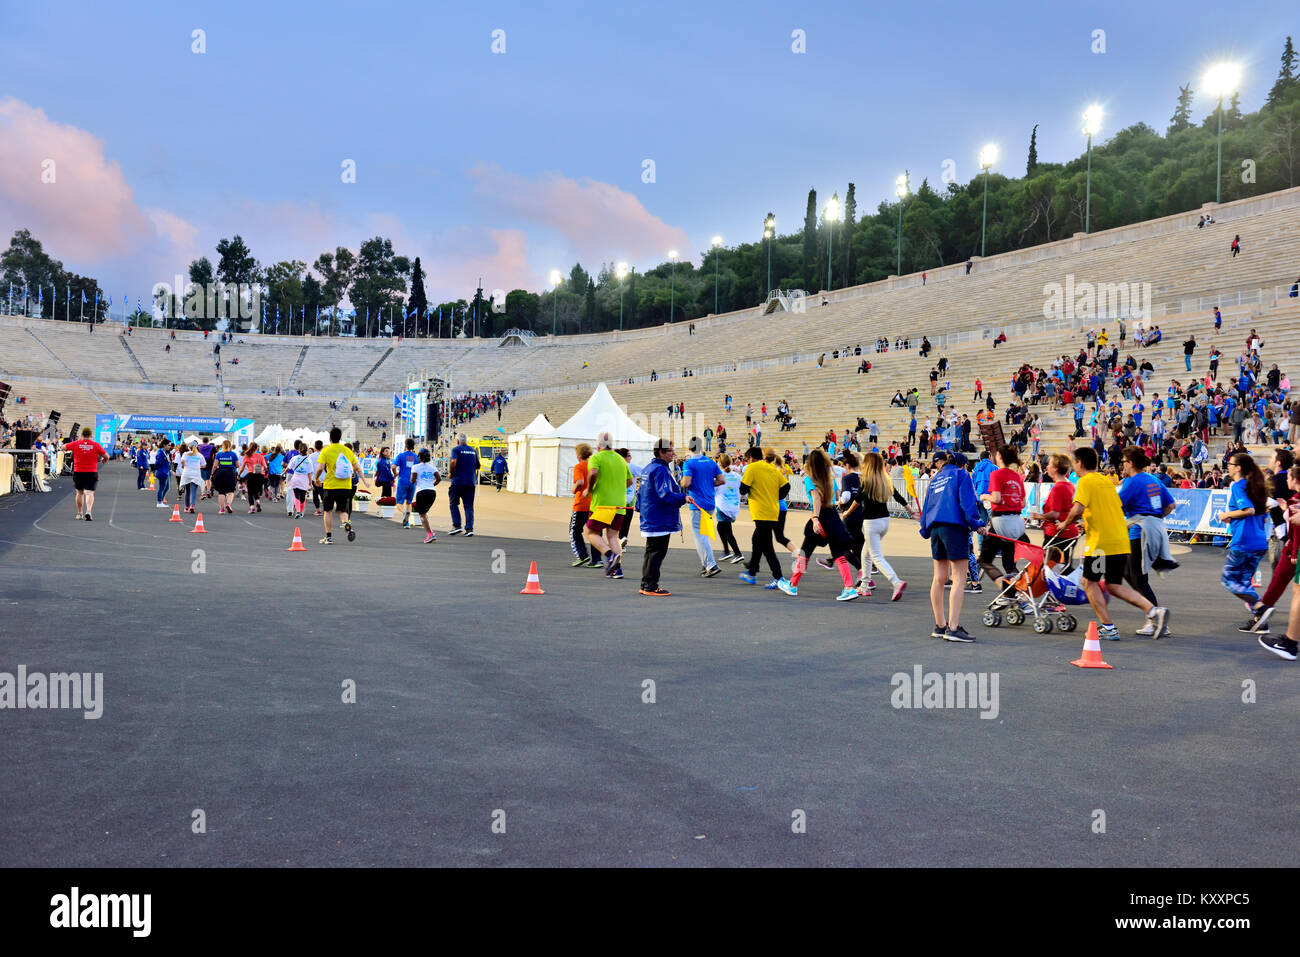 Fun runners entering the Olympic Panathenaic Stadium after the 5km Road Race associated with Athens Authentic Marathon - Stock Image